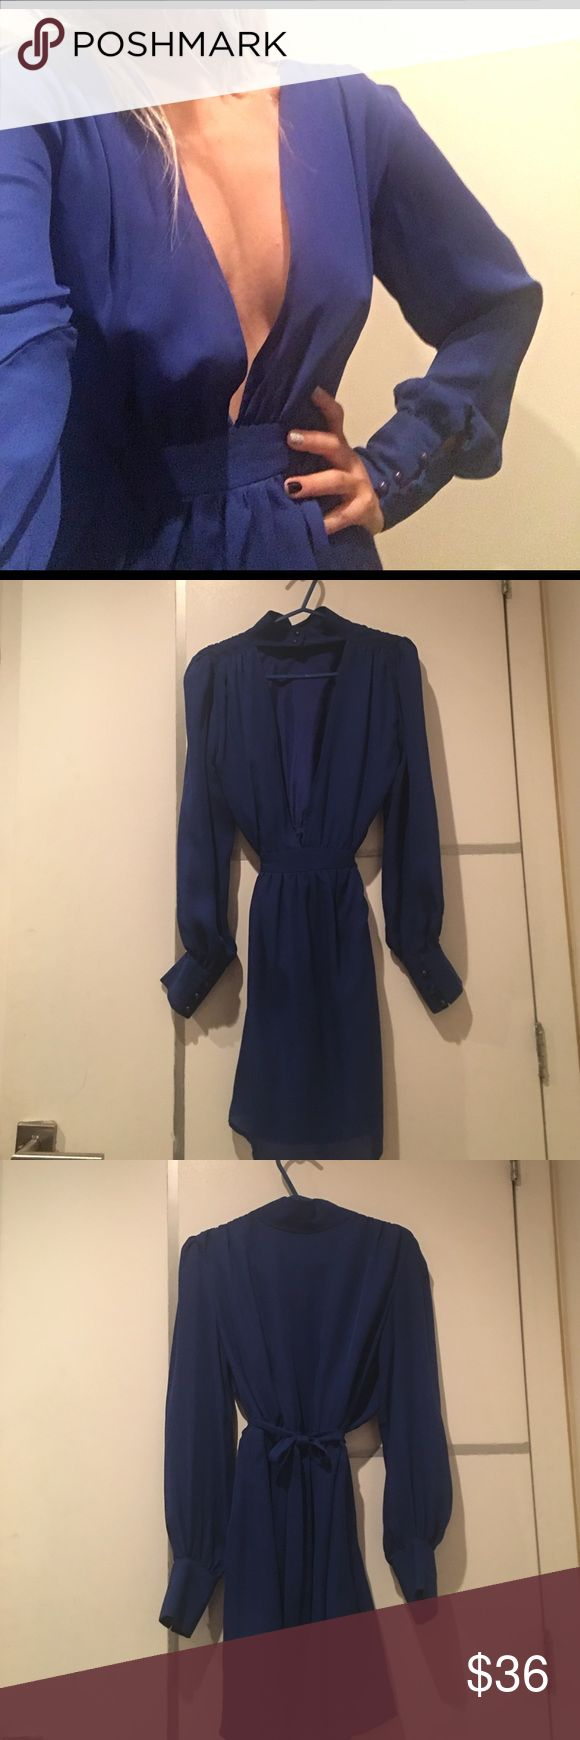 Hanukkah Hottie - low V neck vintage dress This dress can seriously be worn frontwards and backwards! either for a low V neck or a low back look. Vintage label. Beautiful cobalt blue, 80's style power shoulders , classy 3 buttons on the cuff, and a choker style collar. Scarlette & O Dresses Midi